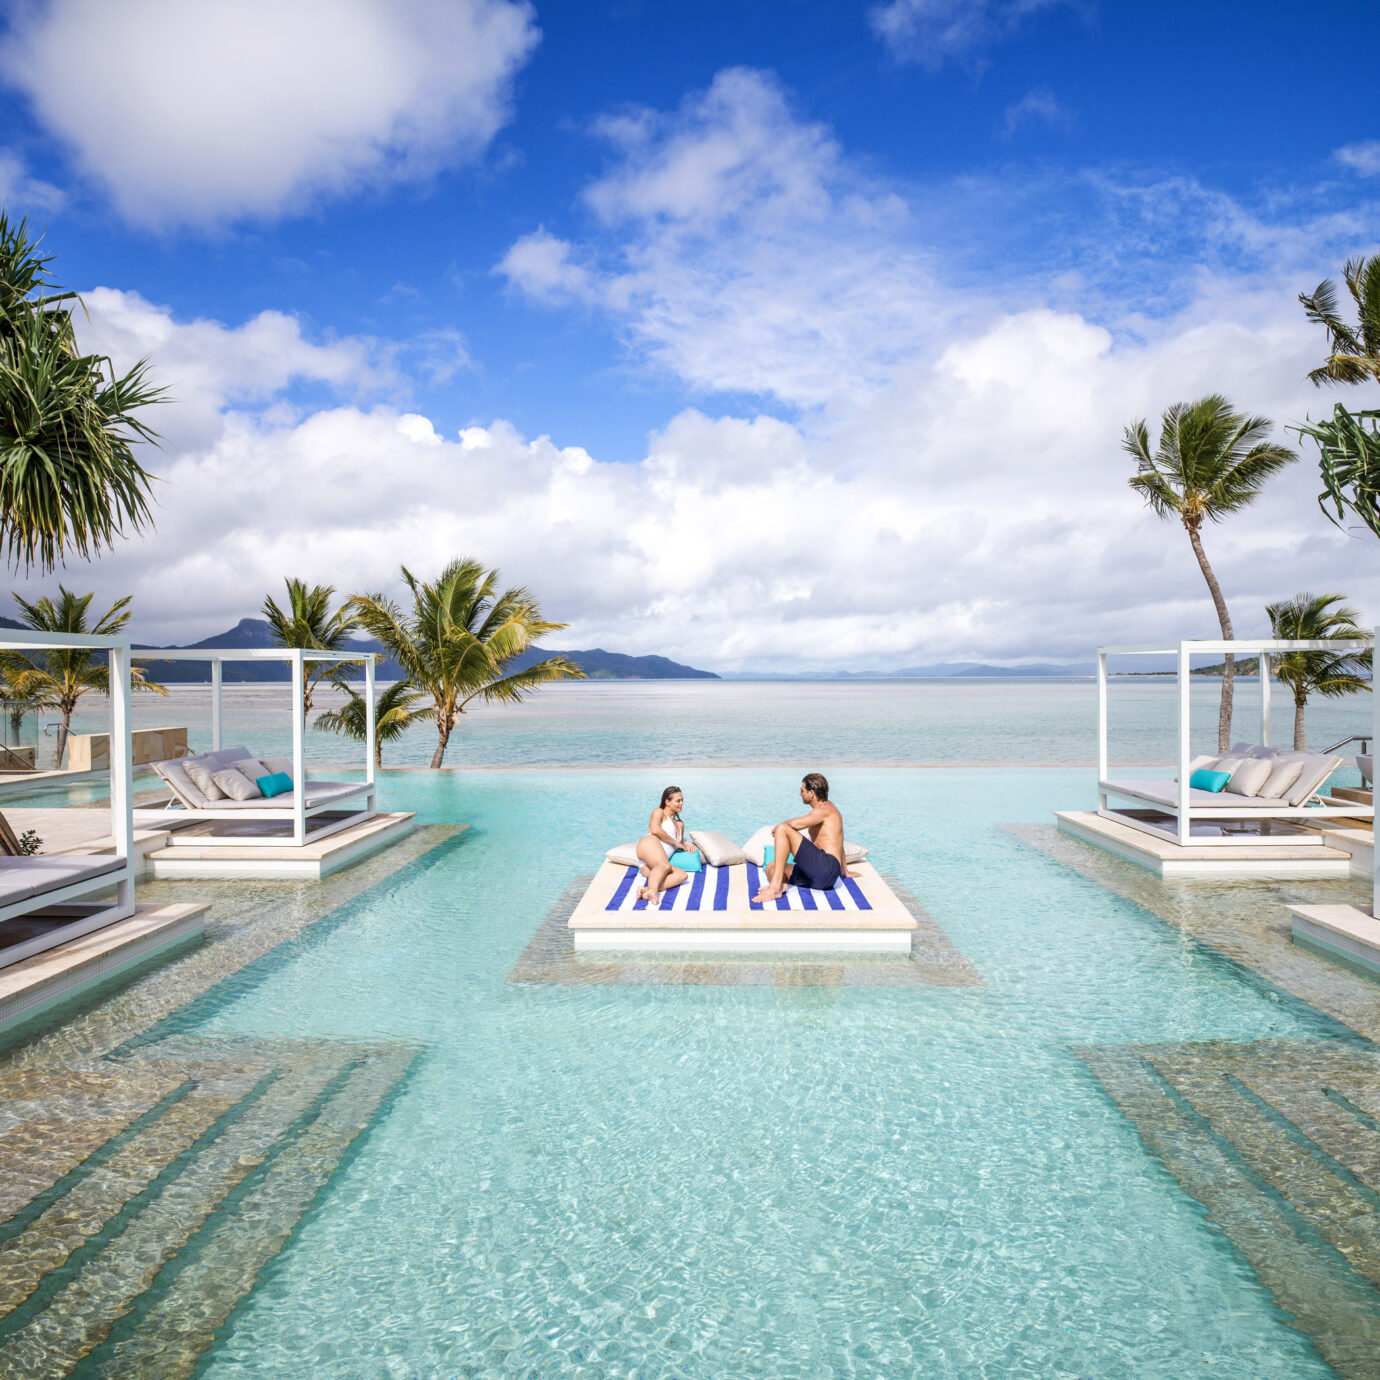 Pool at Hayman Island Resort